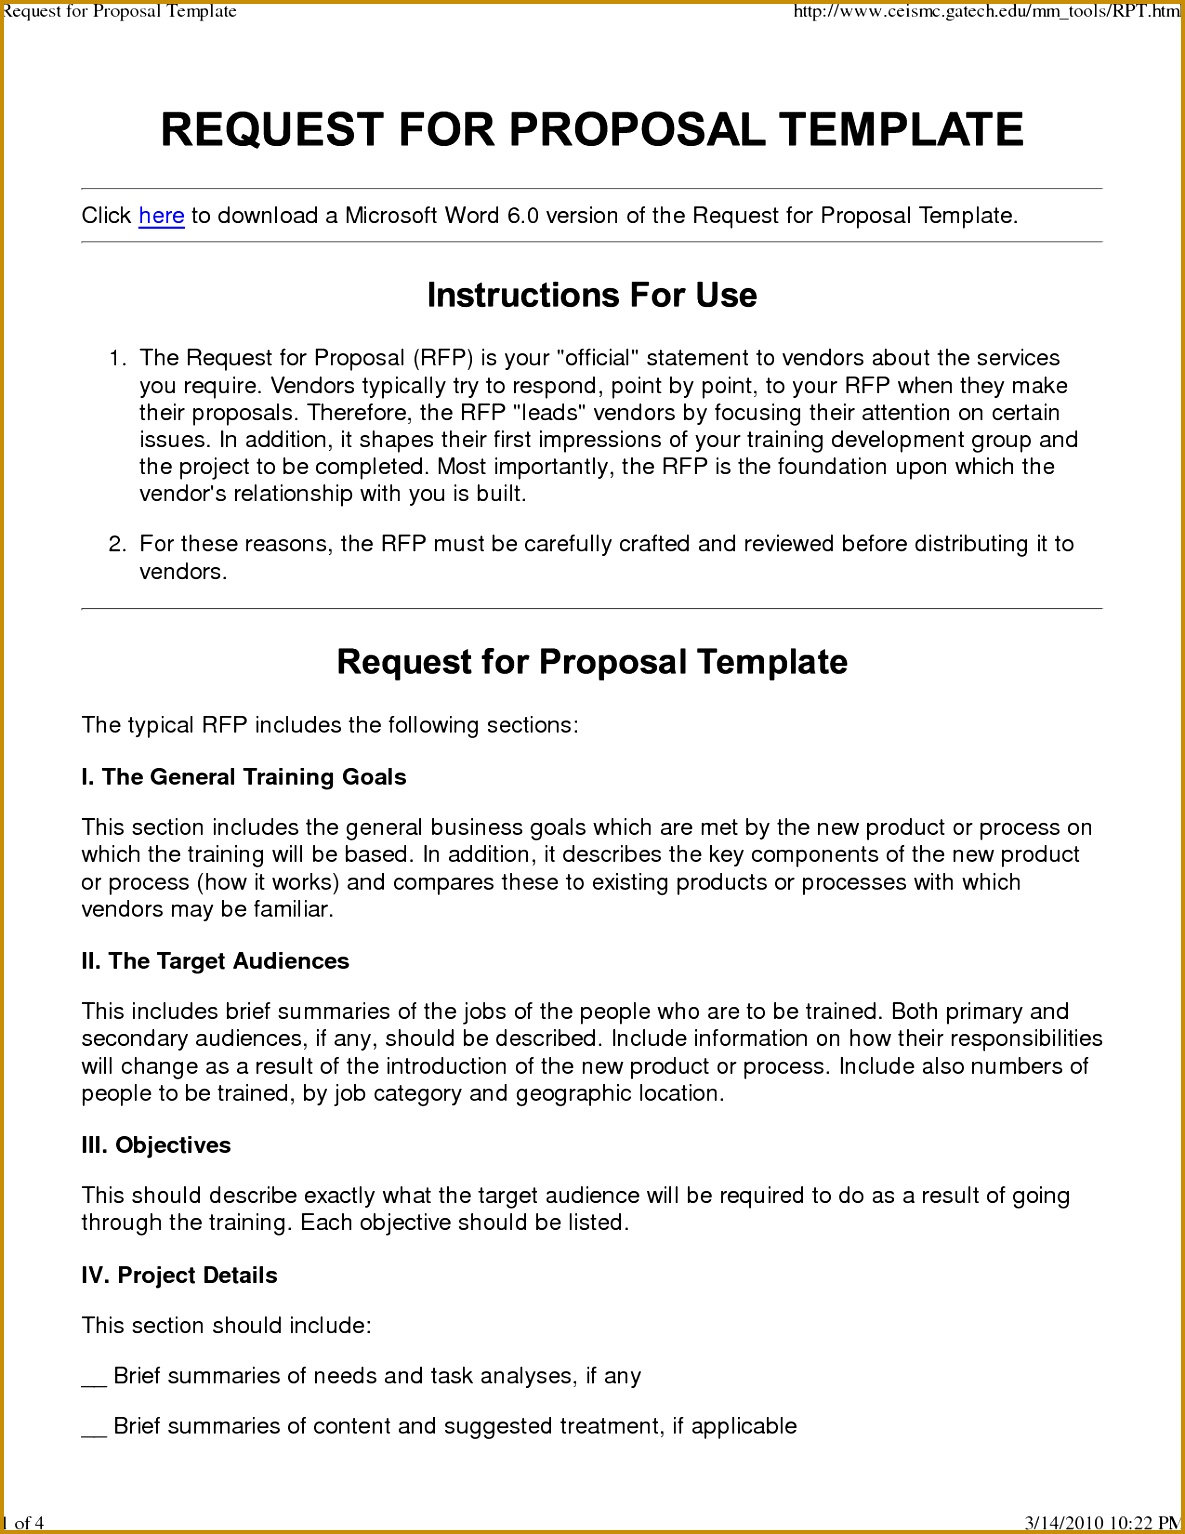 Request for Proposal RFP Template 11851534